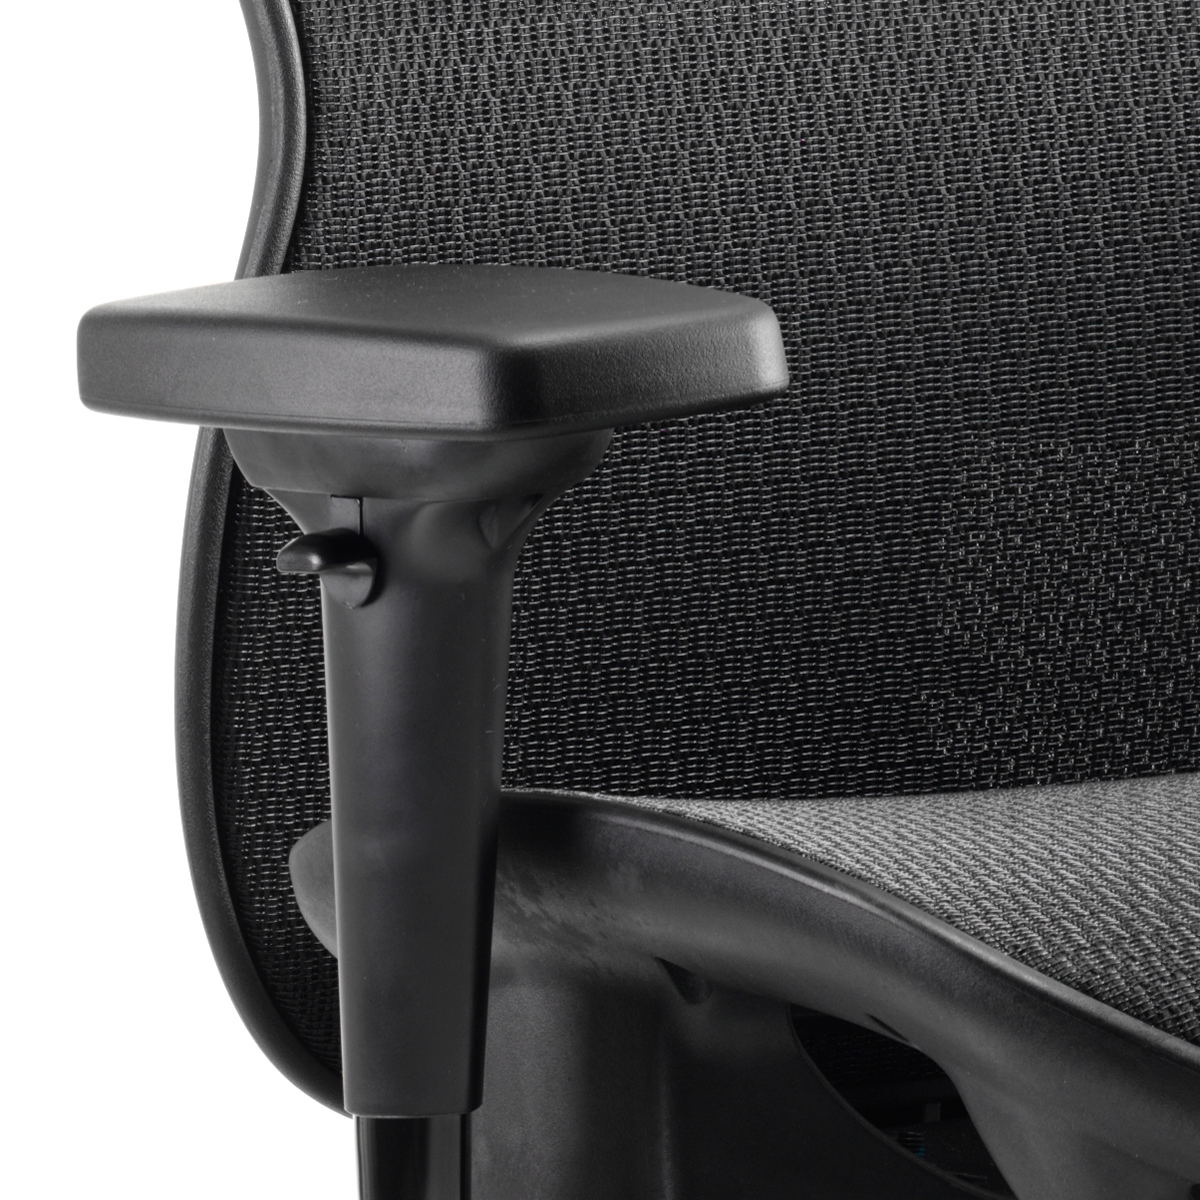 Adroit Stealth Shadow Ergo Posture Chair With Arms With Headrest Mesh Seat And Back Black Ref KC0159